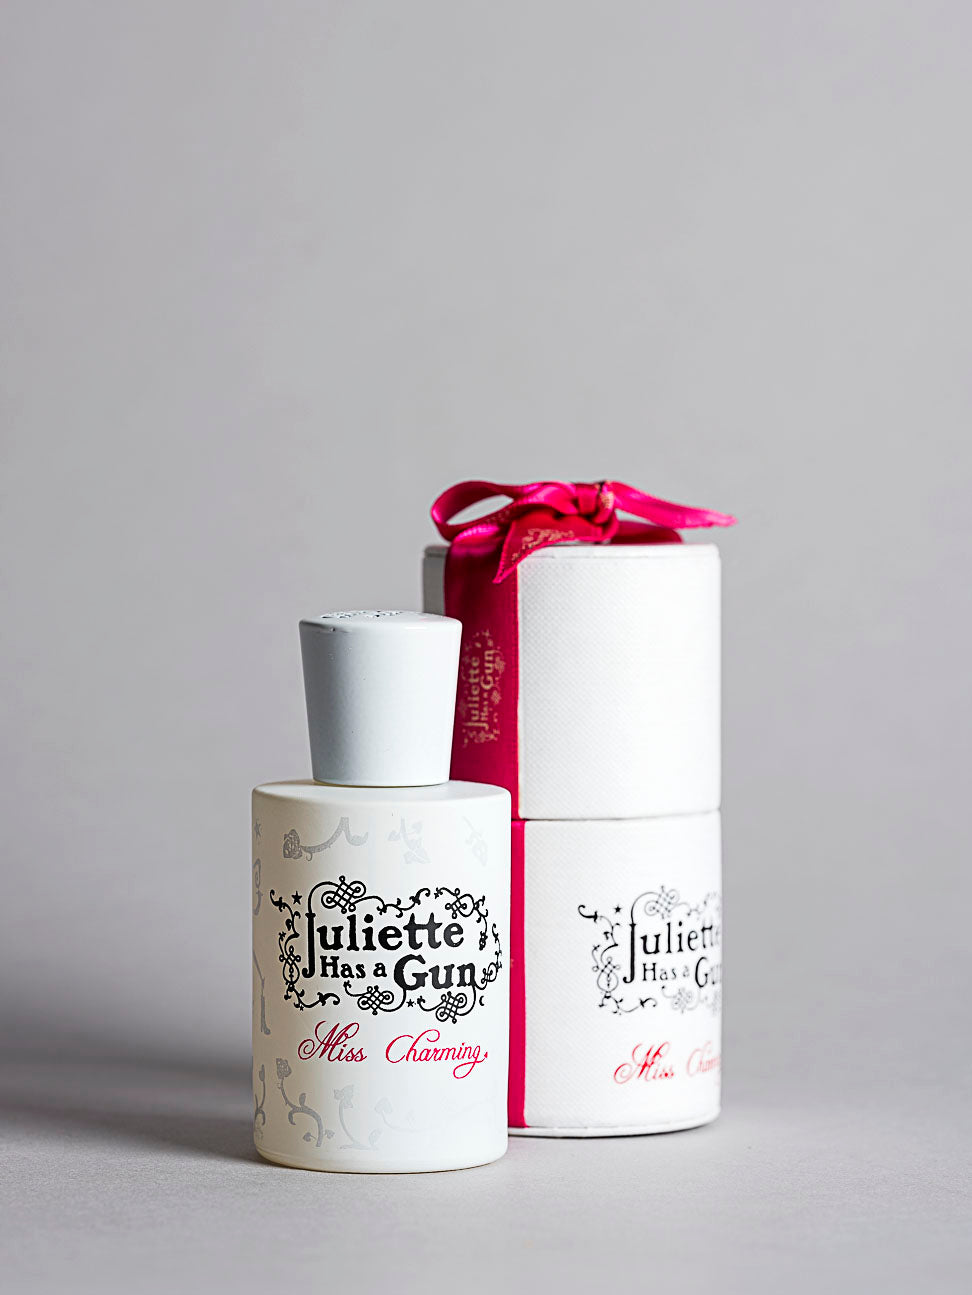 Juliette has a gun - MISS CHARMING 50ml